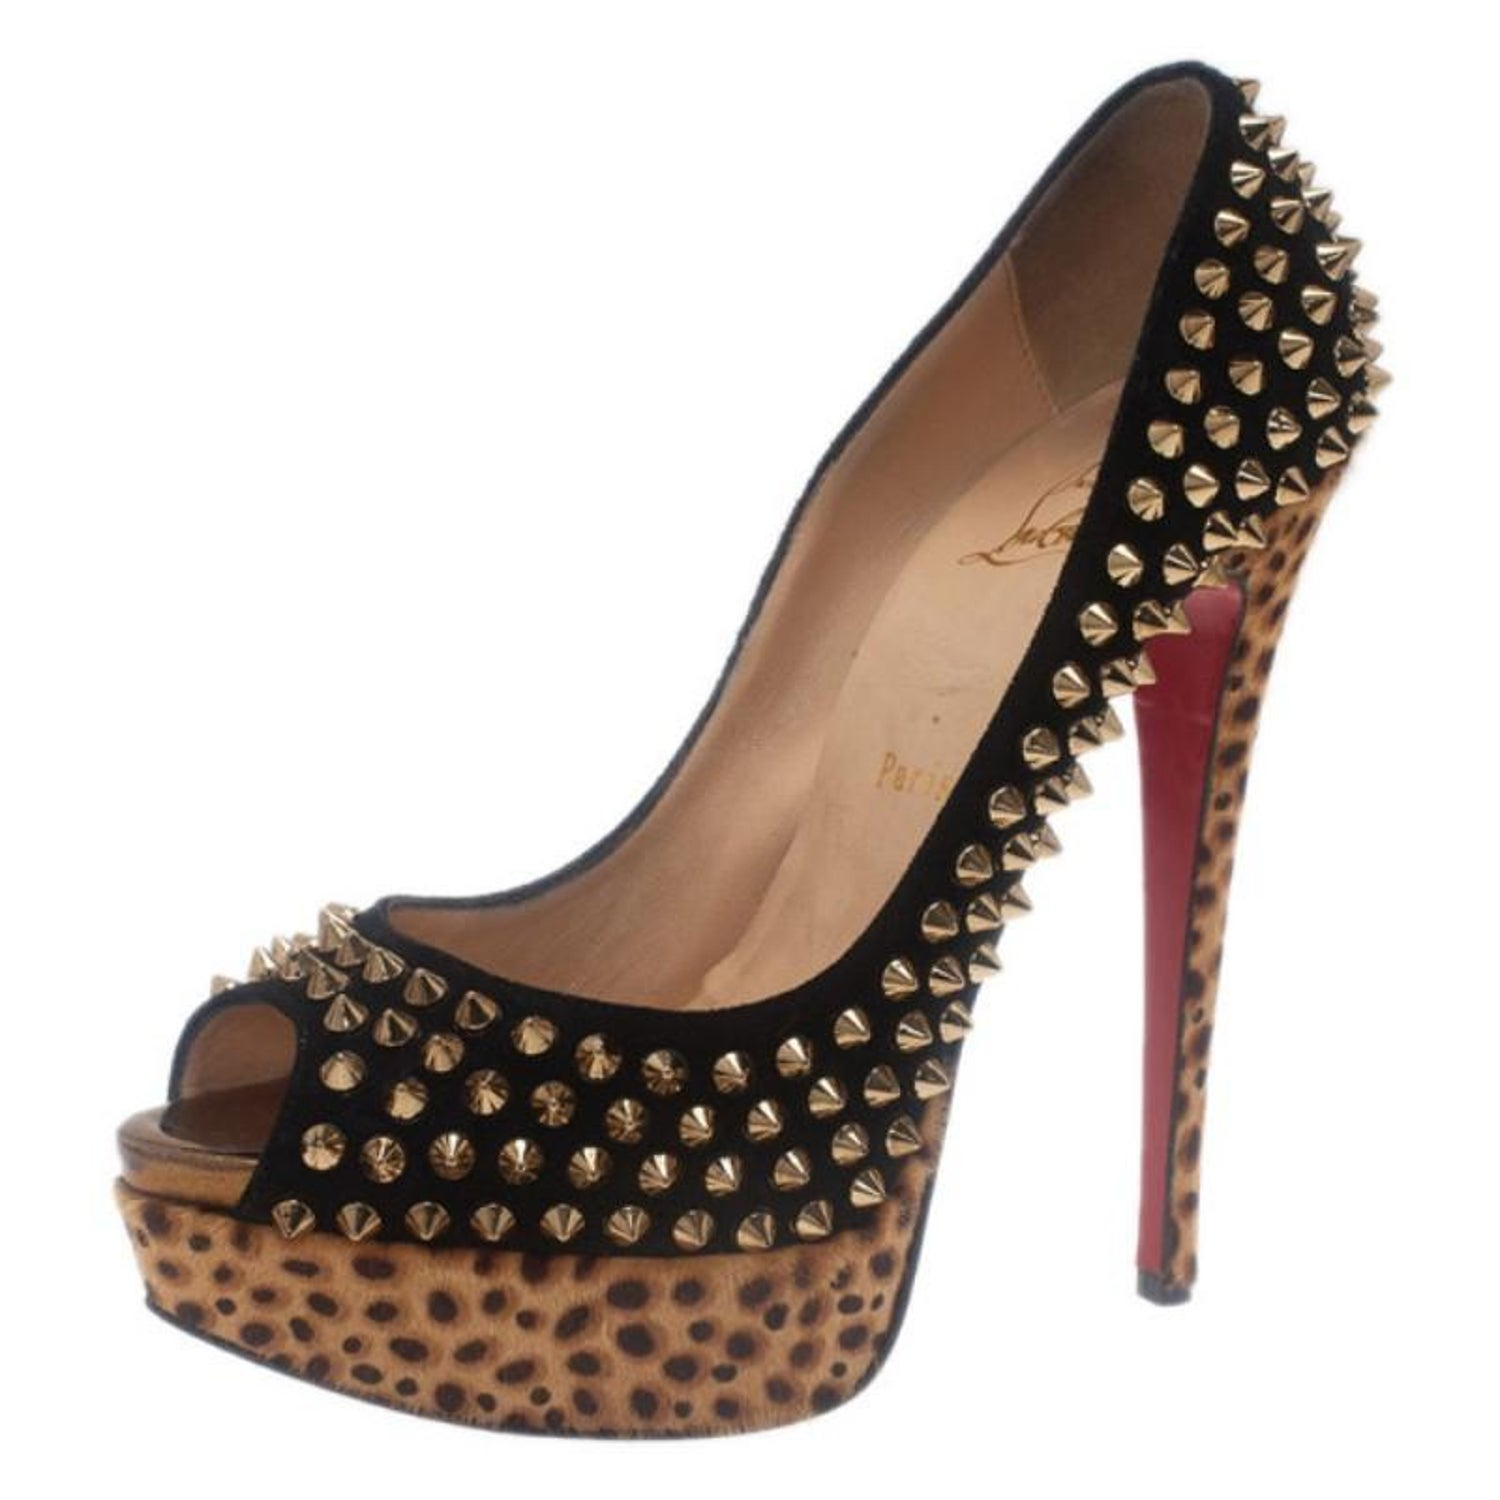 74afec399cba Christian Louboutin Black Suede Leopard Pony Hair Lady Peep Spikes Platform  Pump For Sale at 1stdibs